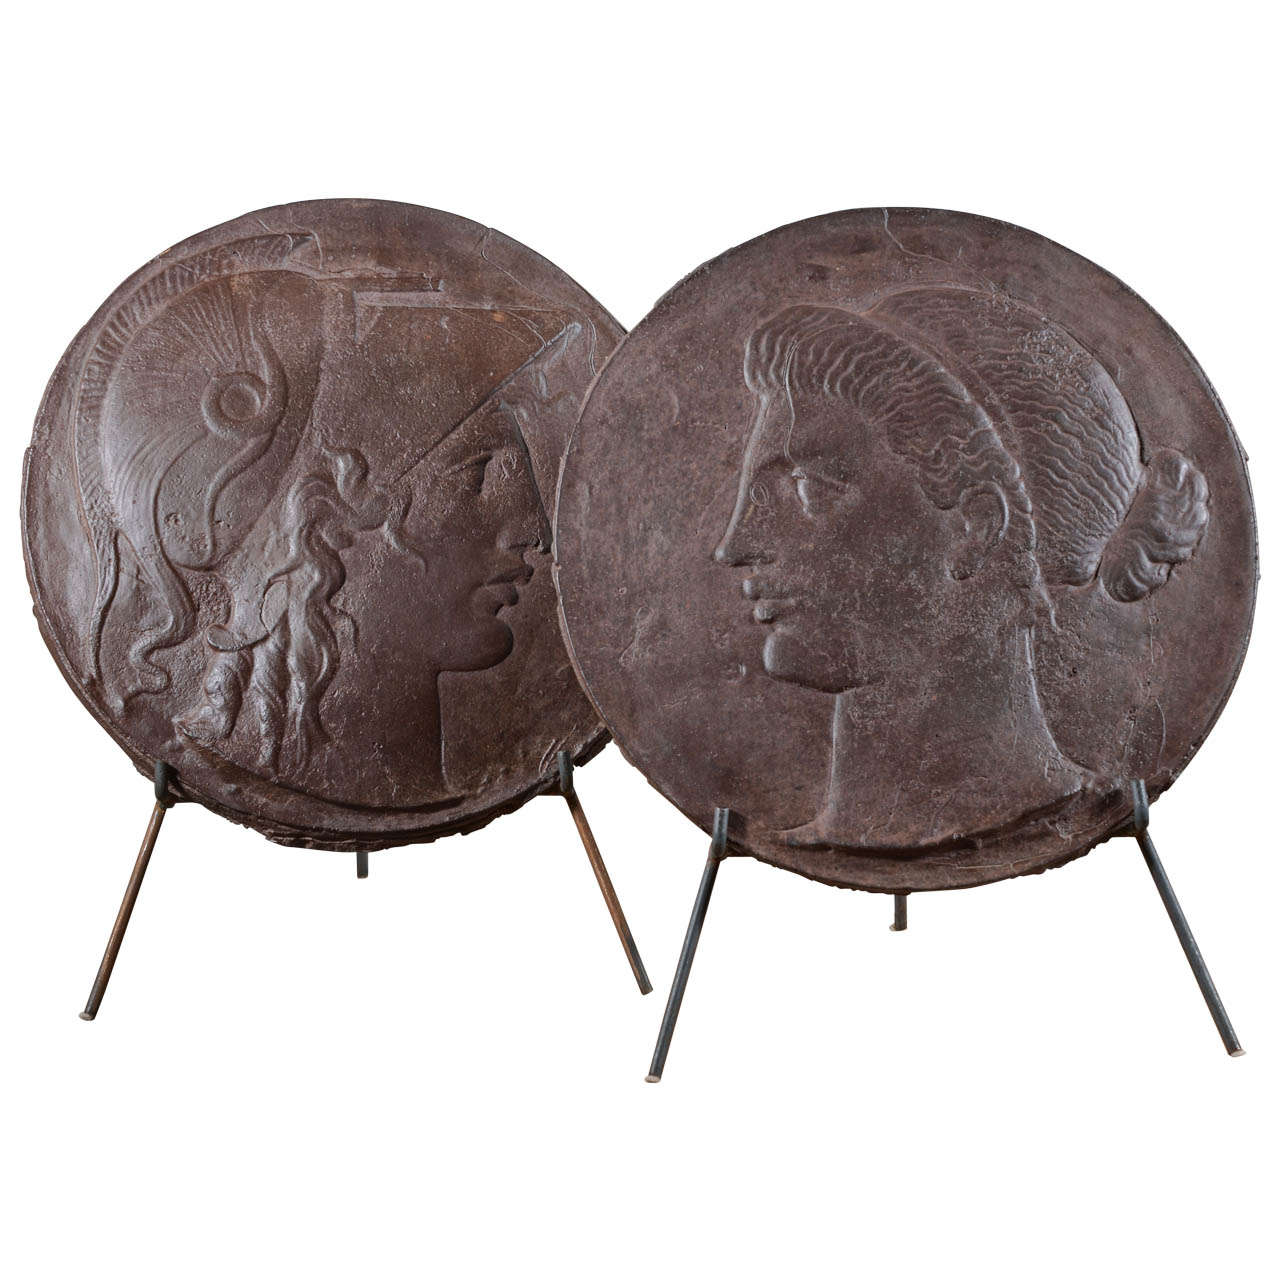 Pair Of Large Iron Medallions On Stands For Sale At 1stdibs